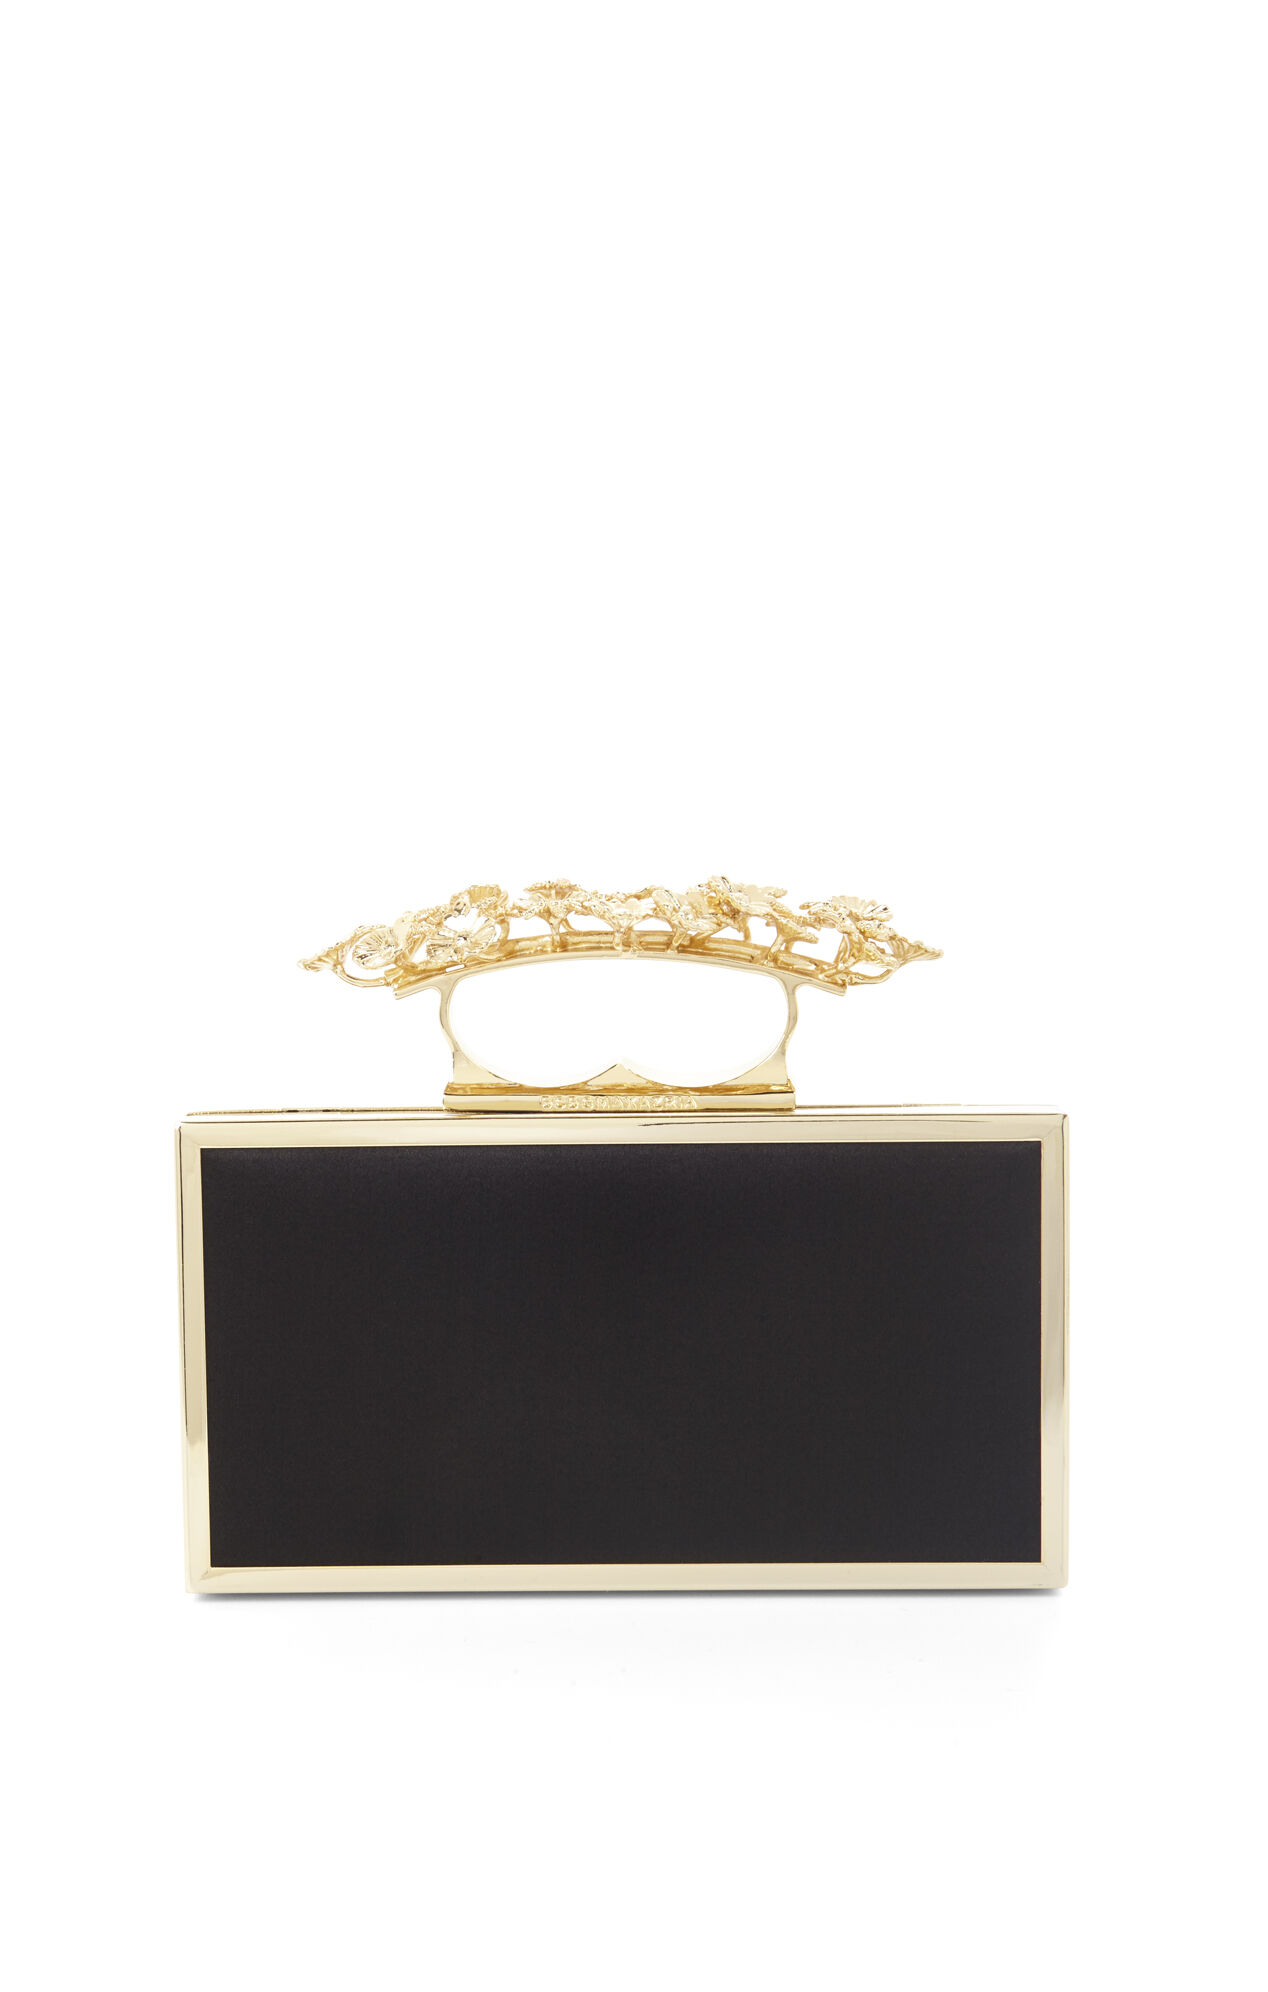 Zoe Floral Filigree Satin Clutch